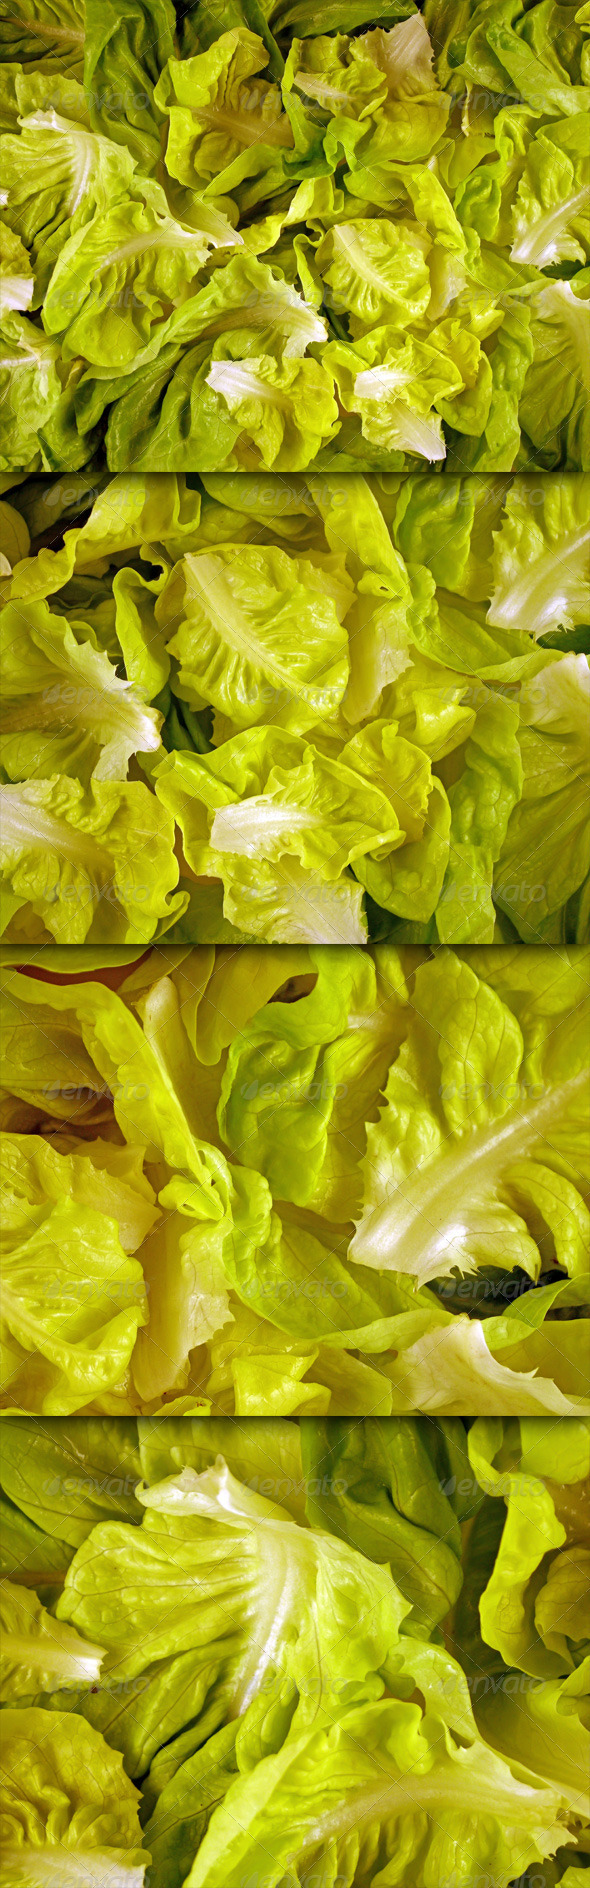 Lettuce Leaves - Nature Textures